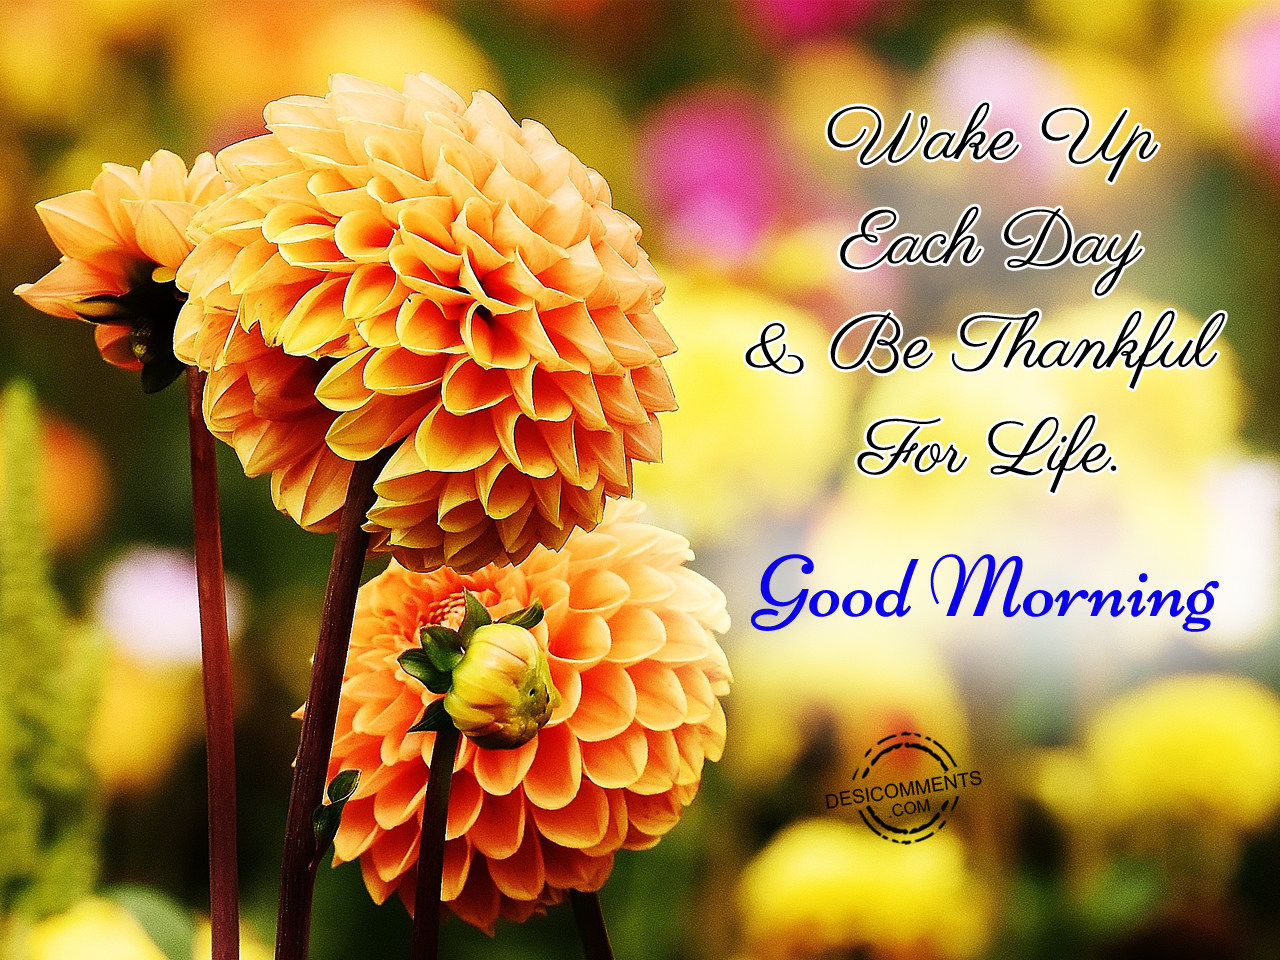 Good Morning Pictures And Images : Good morning be thankful for life inspiring quotes and